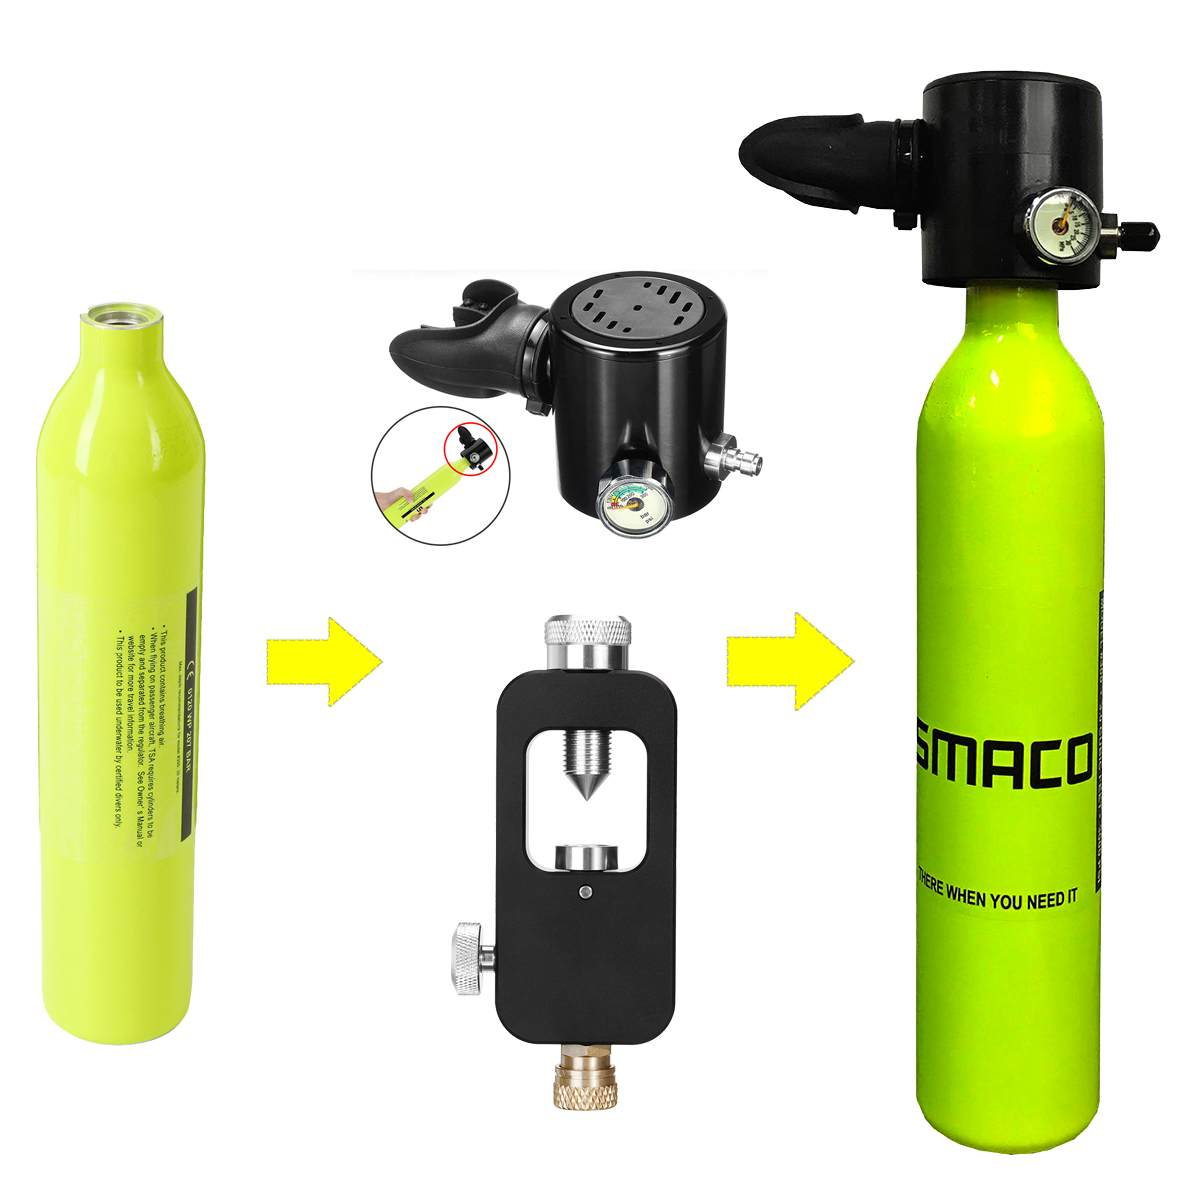 0.5L Mini Scuba Oxygen Diving Equipment Air Tanks Cylinder Head Valve Mouthpiece Adapter Snorkeling Underwater Breathing Device